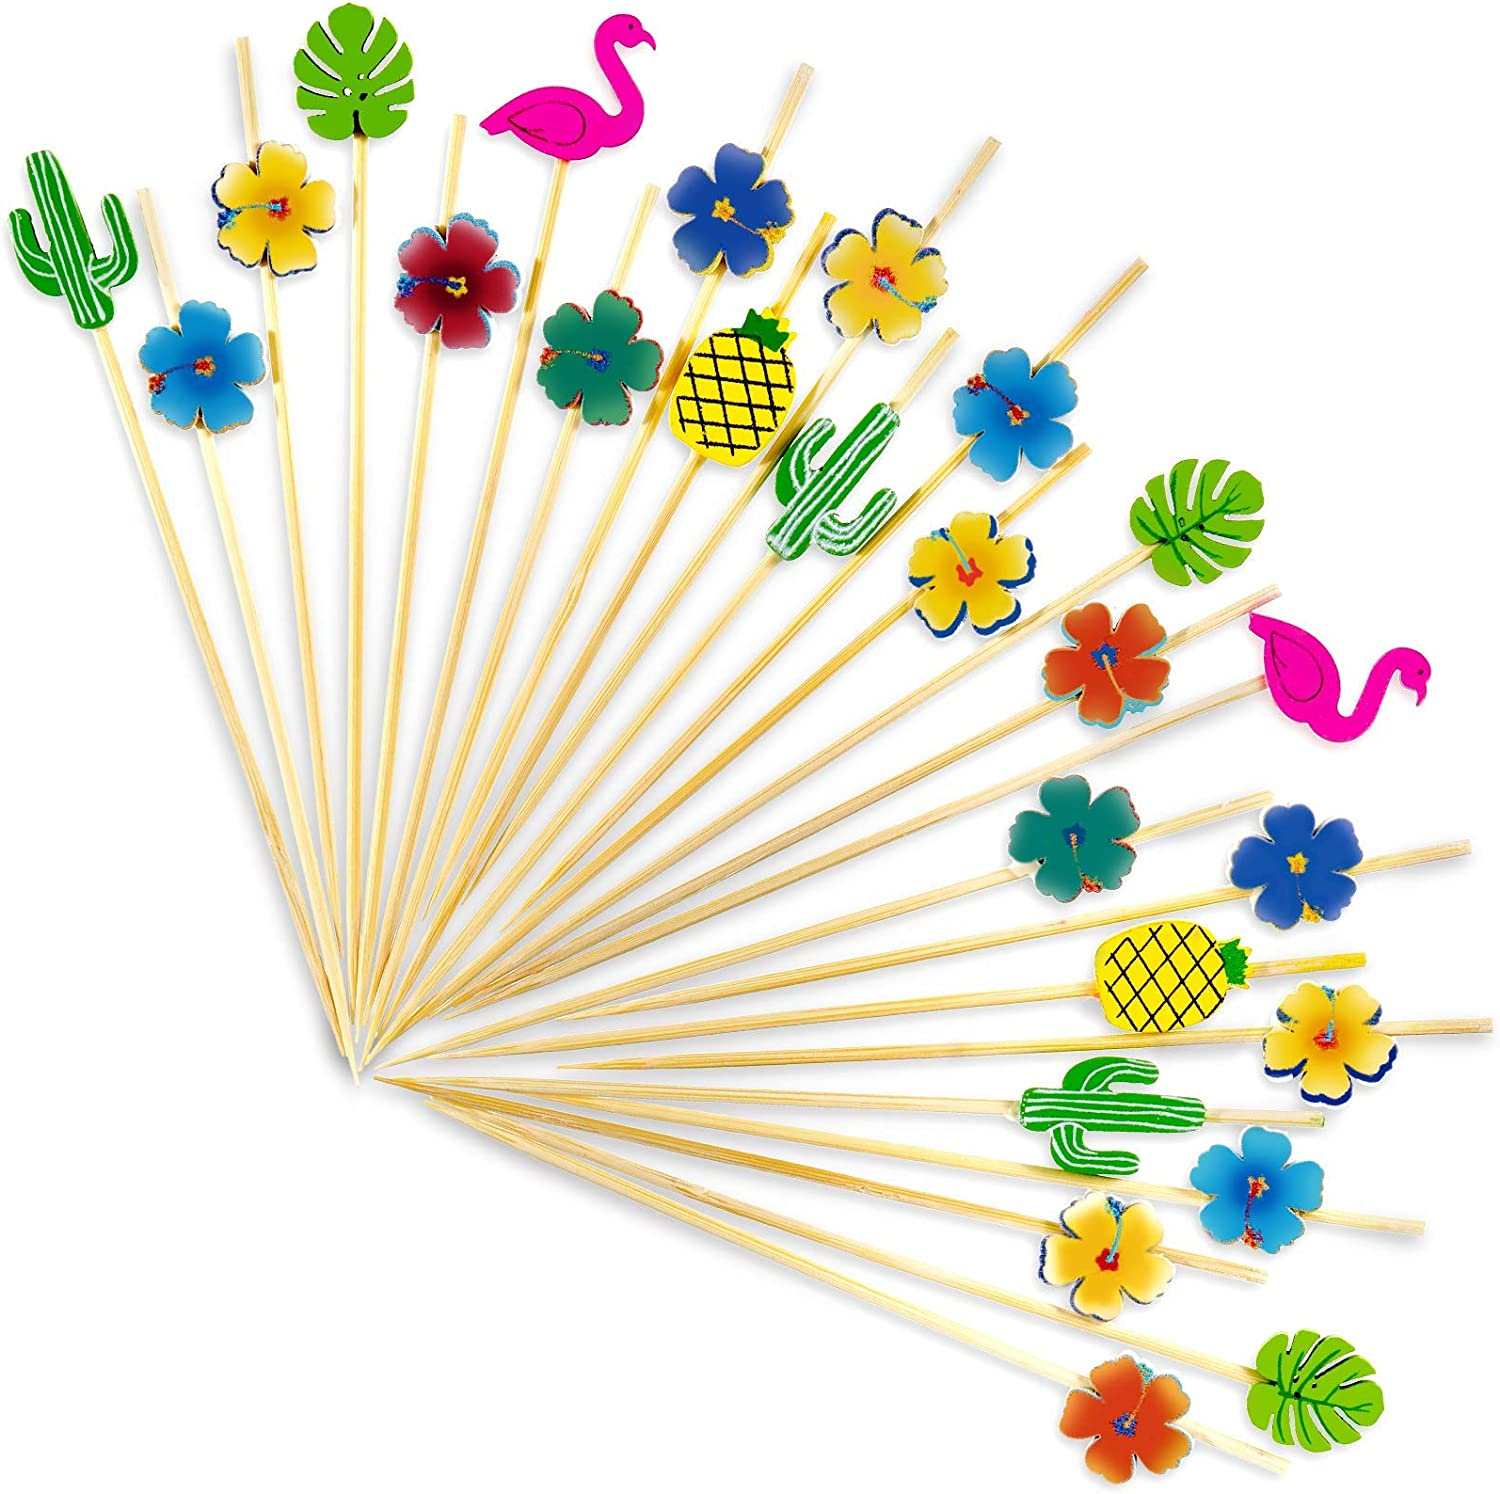 Zubebe 100 Pieces Tropical Cocktail Picks Hawaiian Party Theme Bamboo Toothpicks with Flamingo Cactus Pineapple Palm LeafHibiscus Flower Shapes forParty Cocktails Appetizers Fruits Dessert, 4.7 Inch